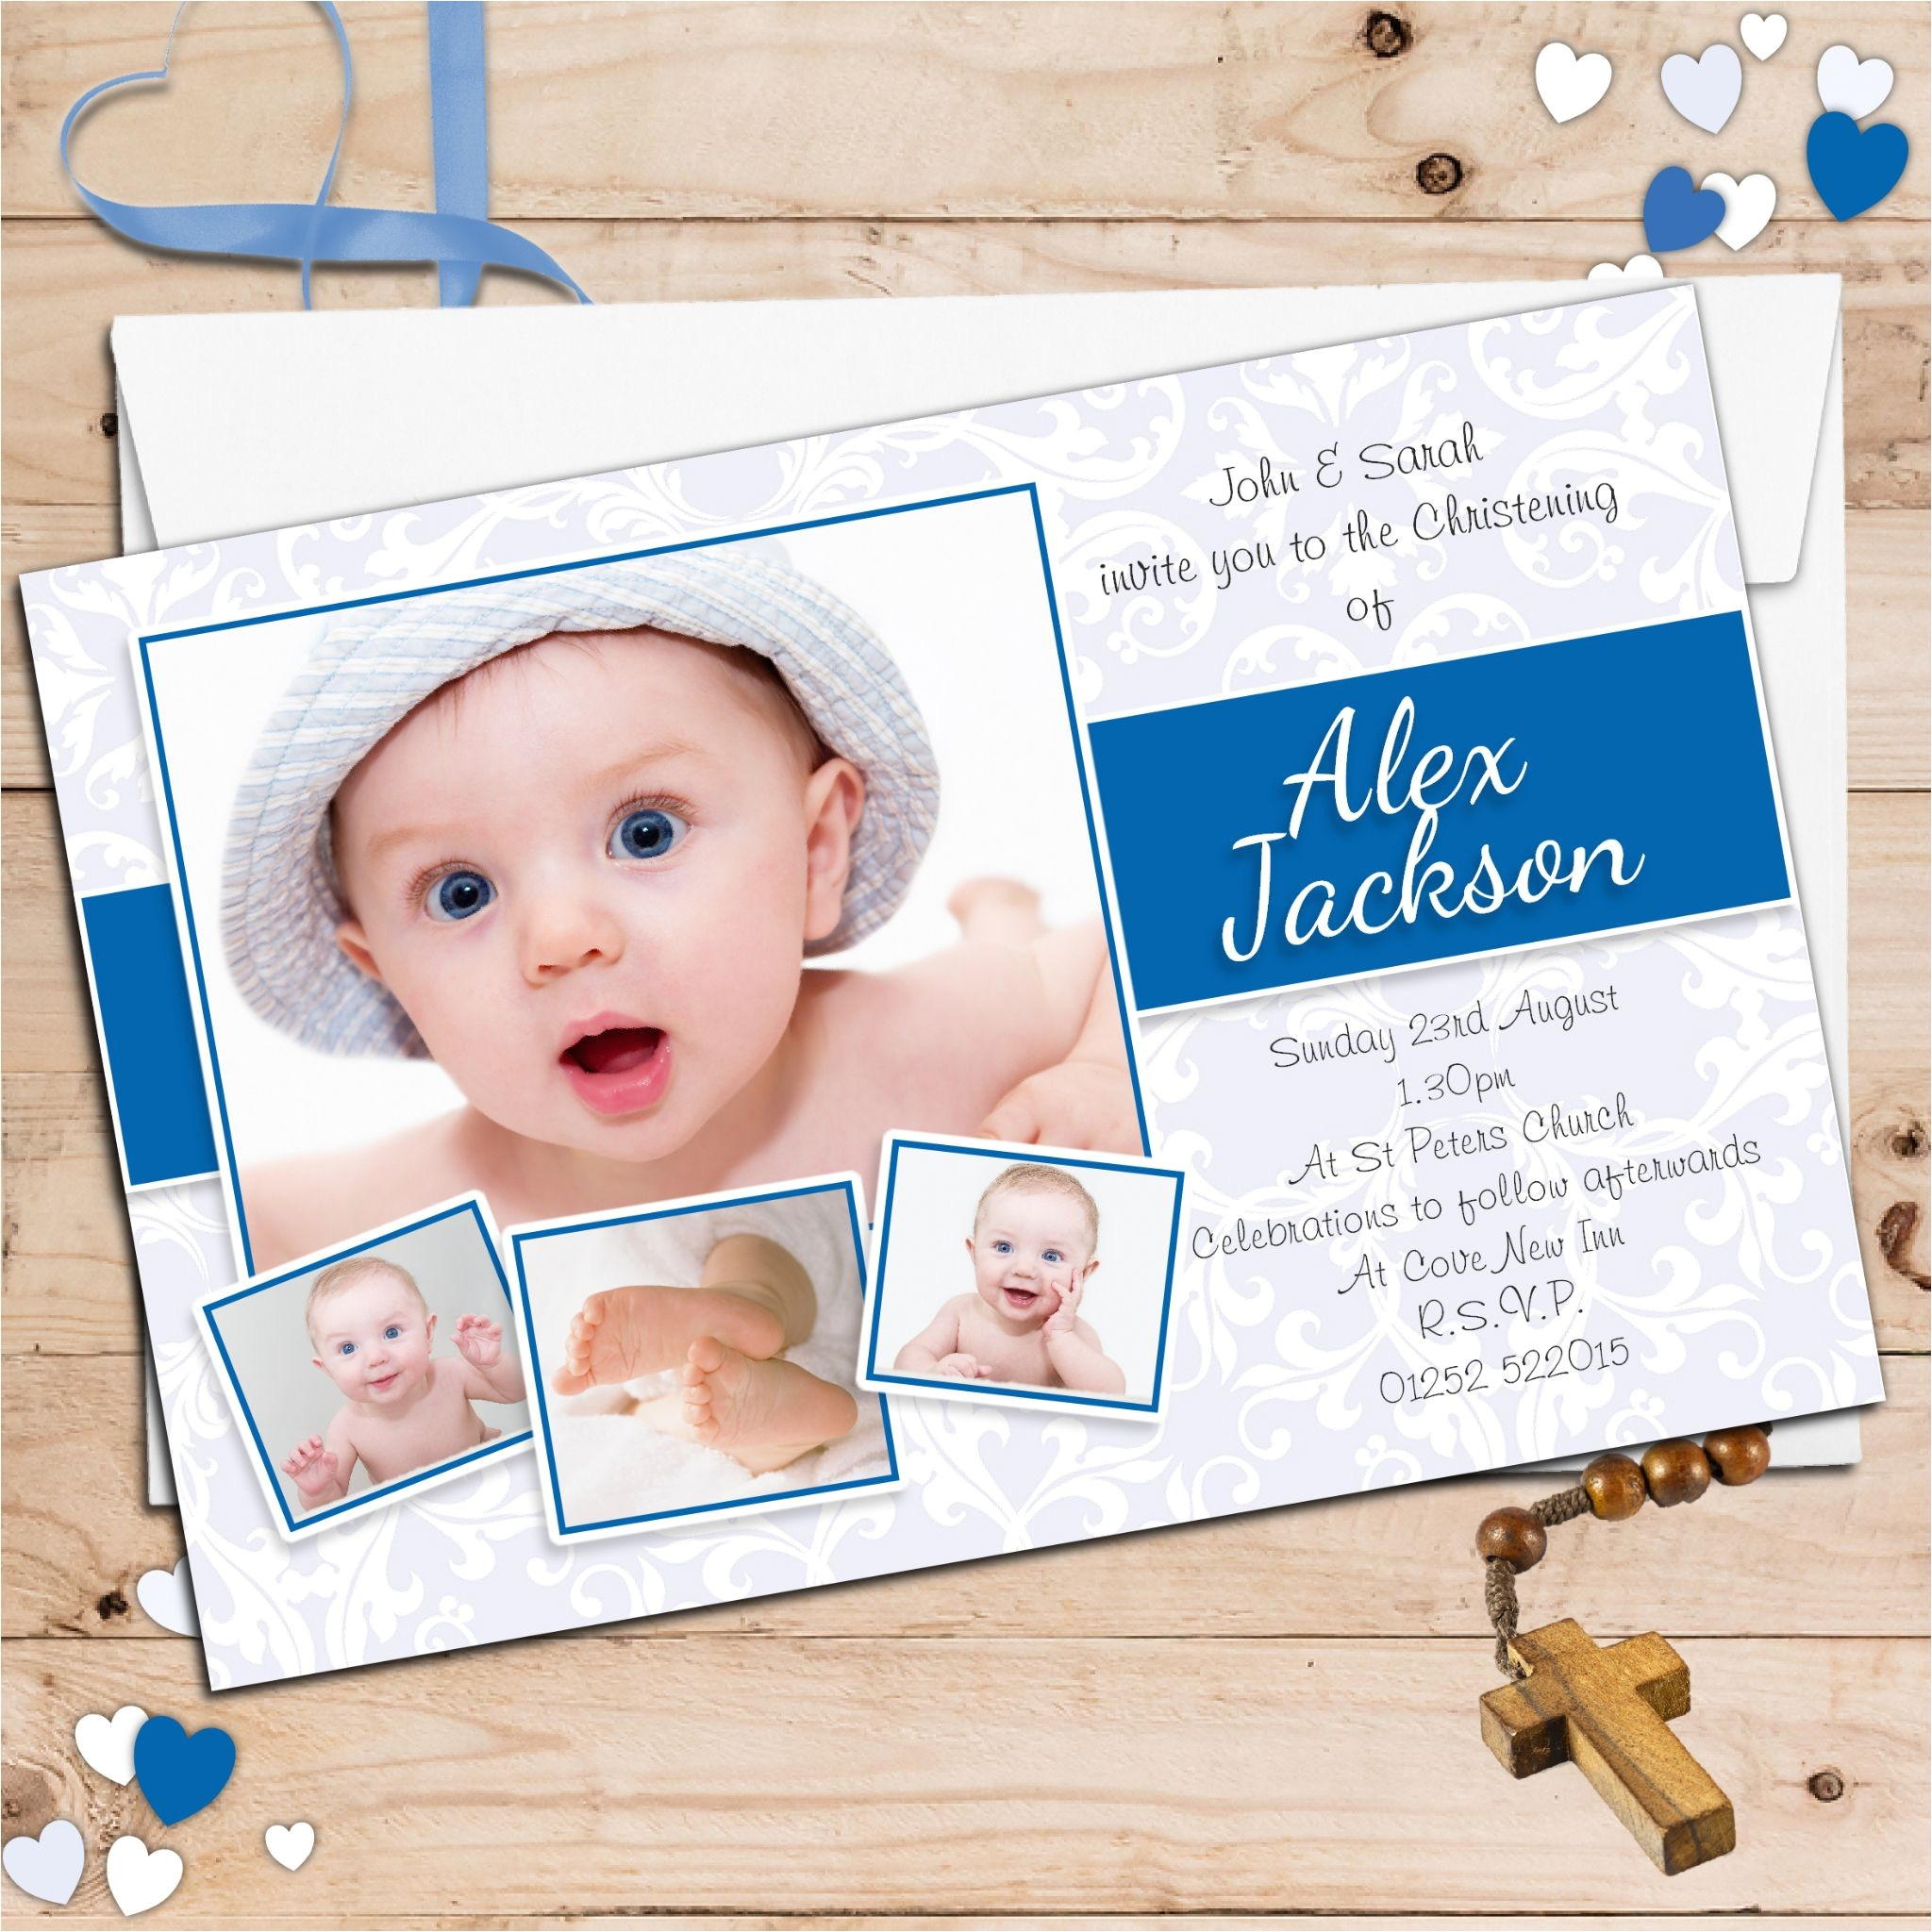 10 personalised boys christening baptism photo invitations n97 p